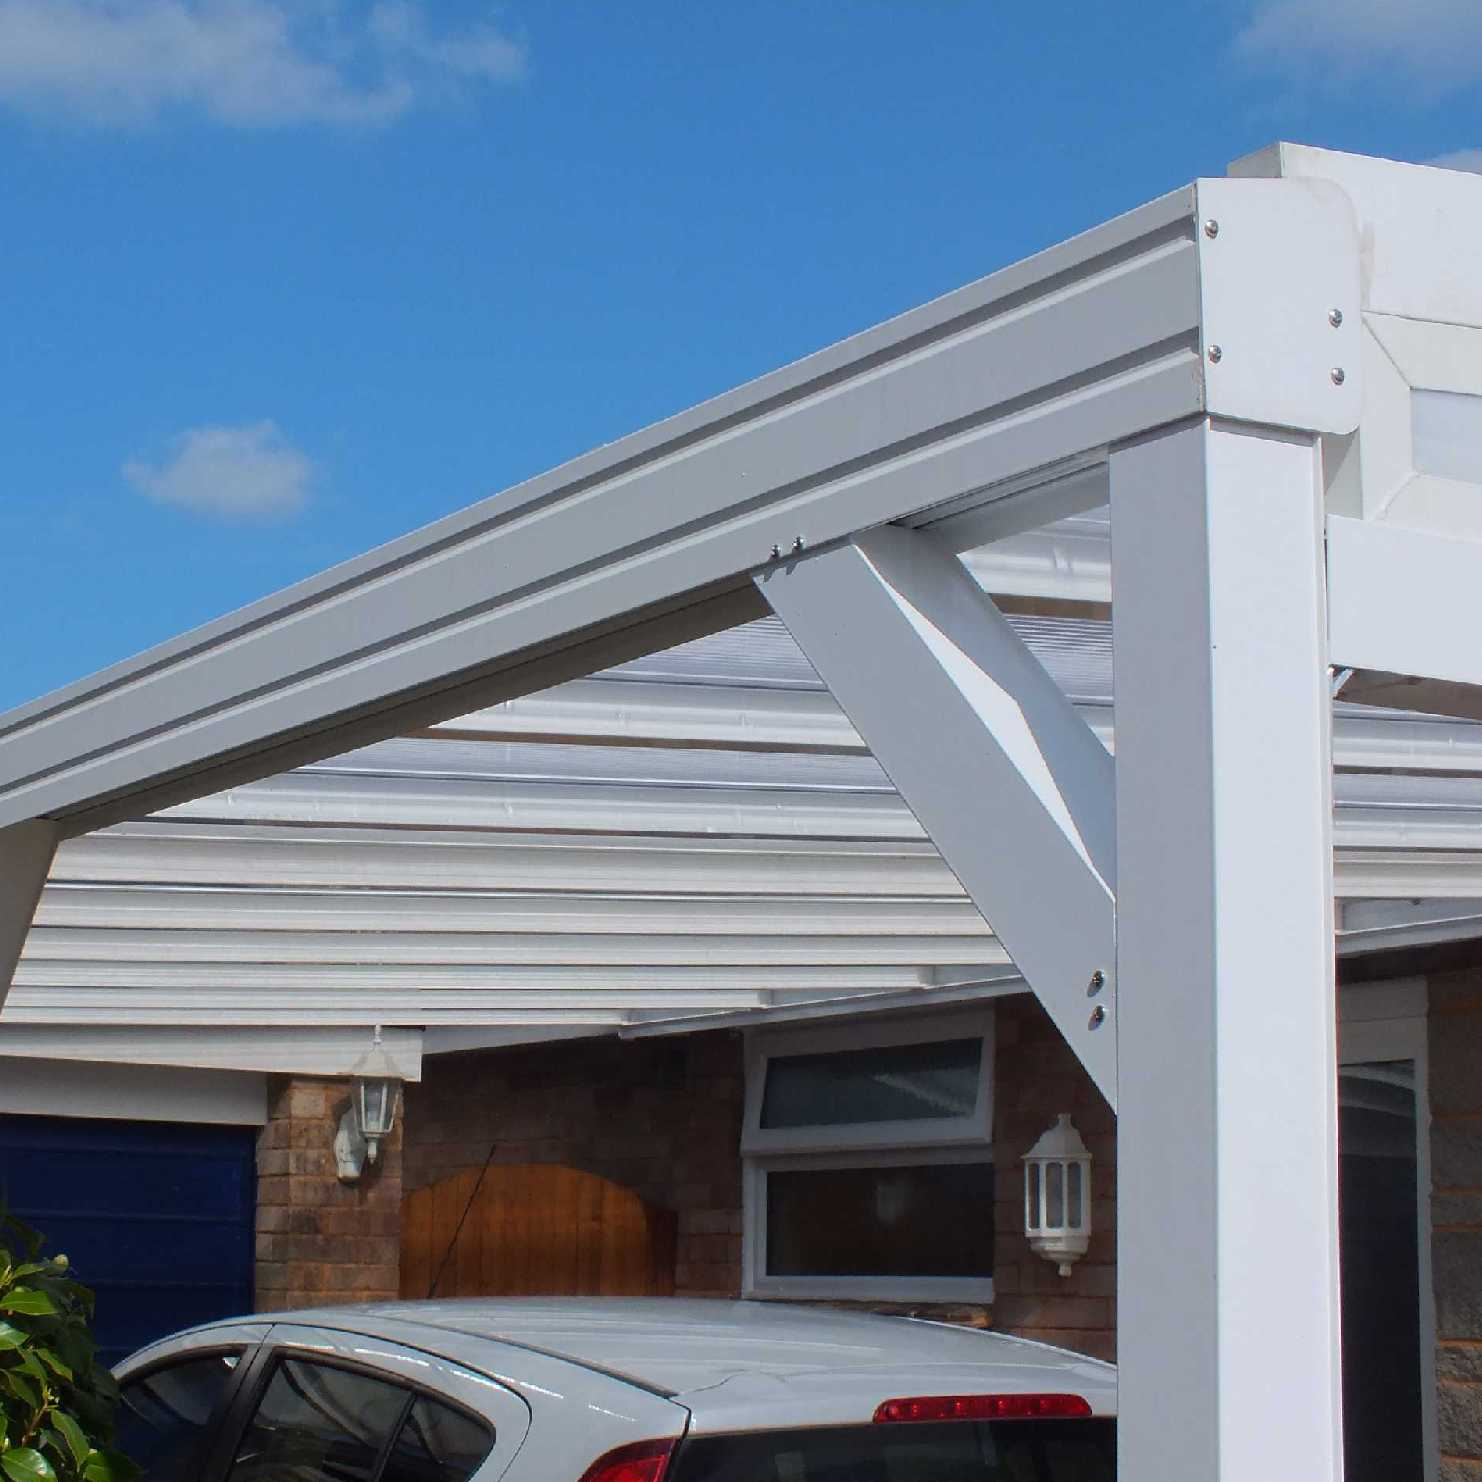 Buy Omega Smart White Lean-To Canopy with 16mm Polycarbonate Glazing - 7.0m (W) x 4.0m (P), (4) Supporting Posts online today